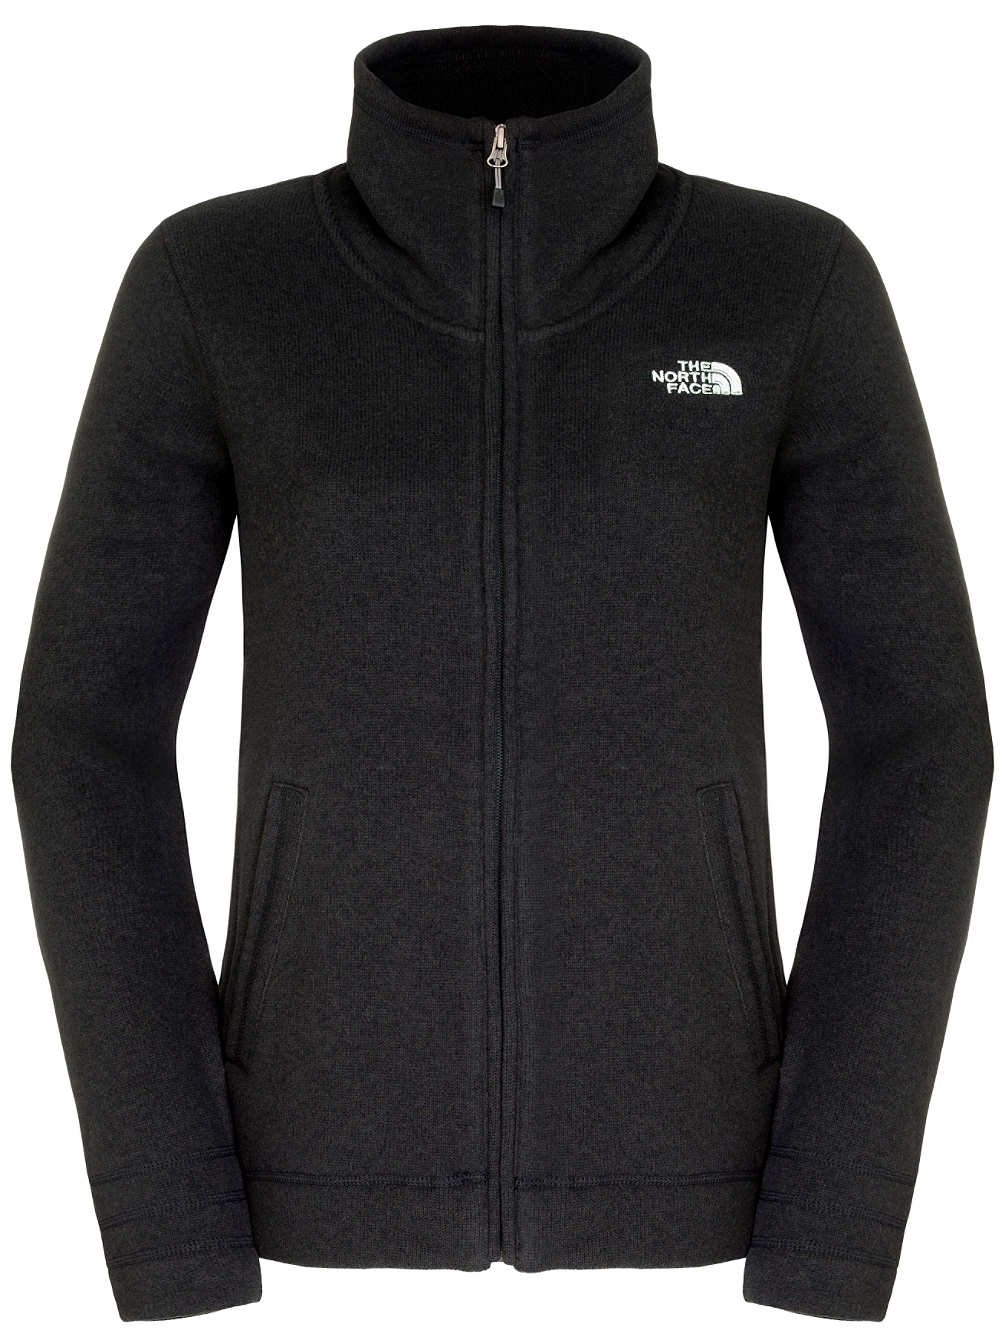 THE NORTH FACE Damen Jacke Crescent Sunset Full Zip kaufen